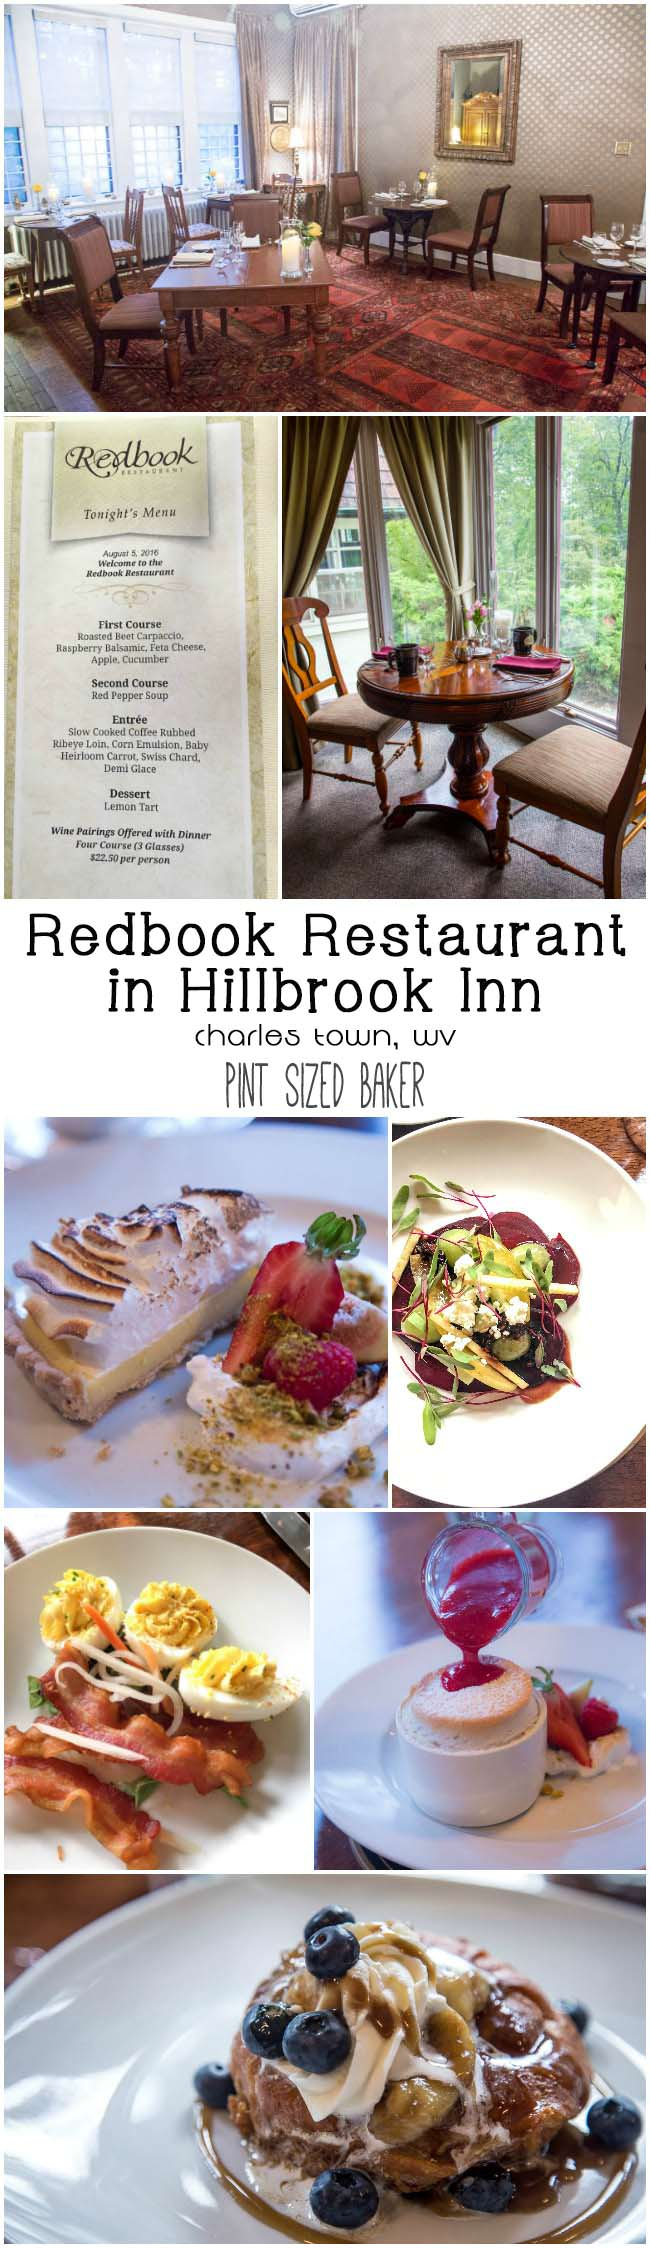 Enjoy a romantic dinner in Charles Town, WV at the Redbook Restaurant located at the Hillbrook Inn. Prix fixe menus that are amazing.